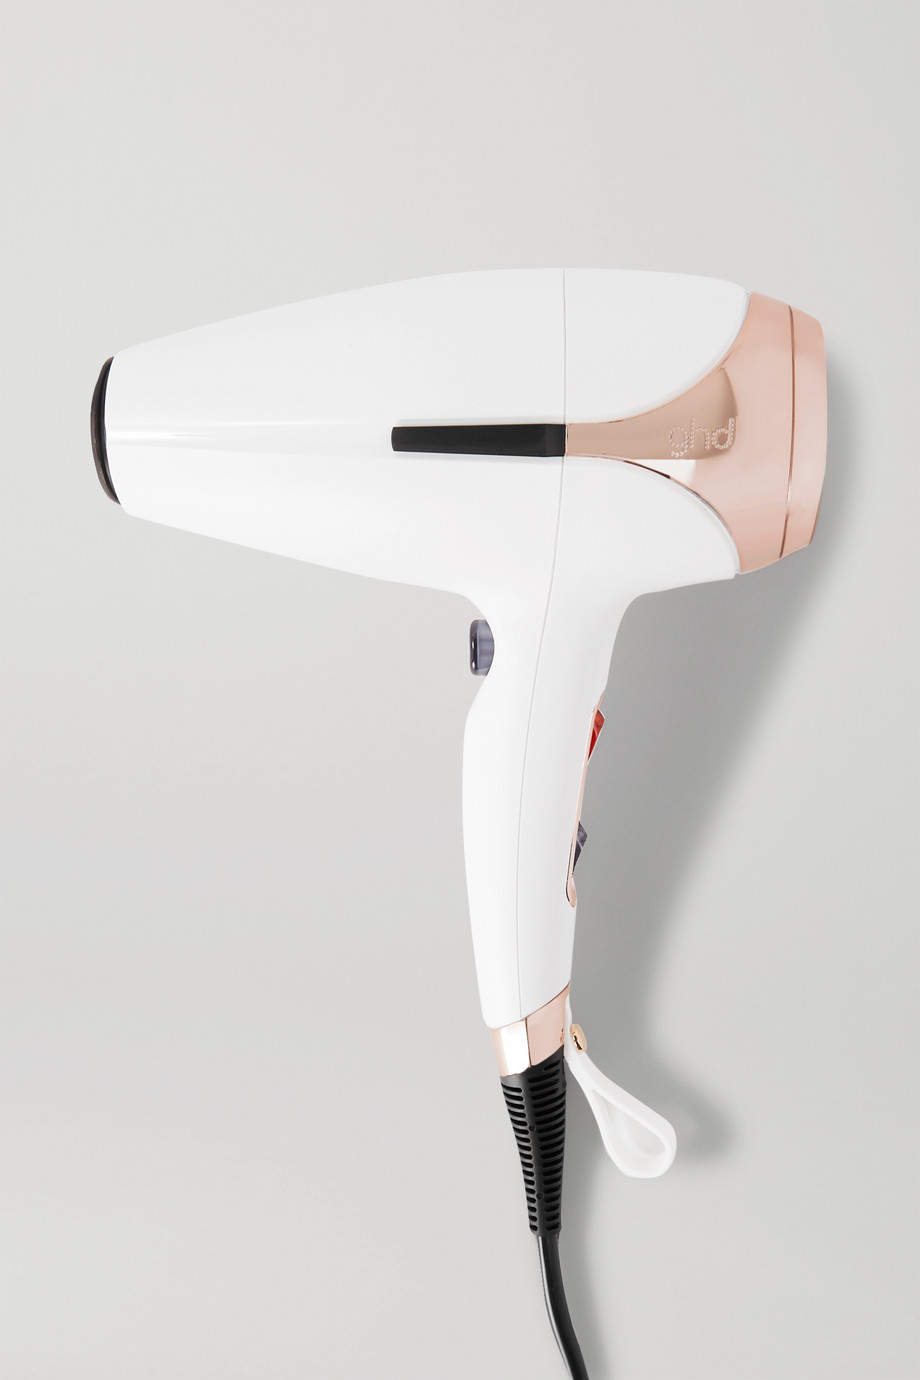 ghd Helios Hairdryer - UK 3-pin plug